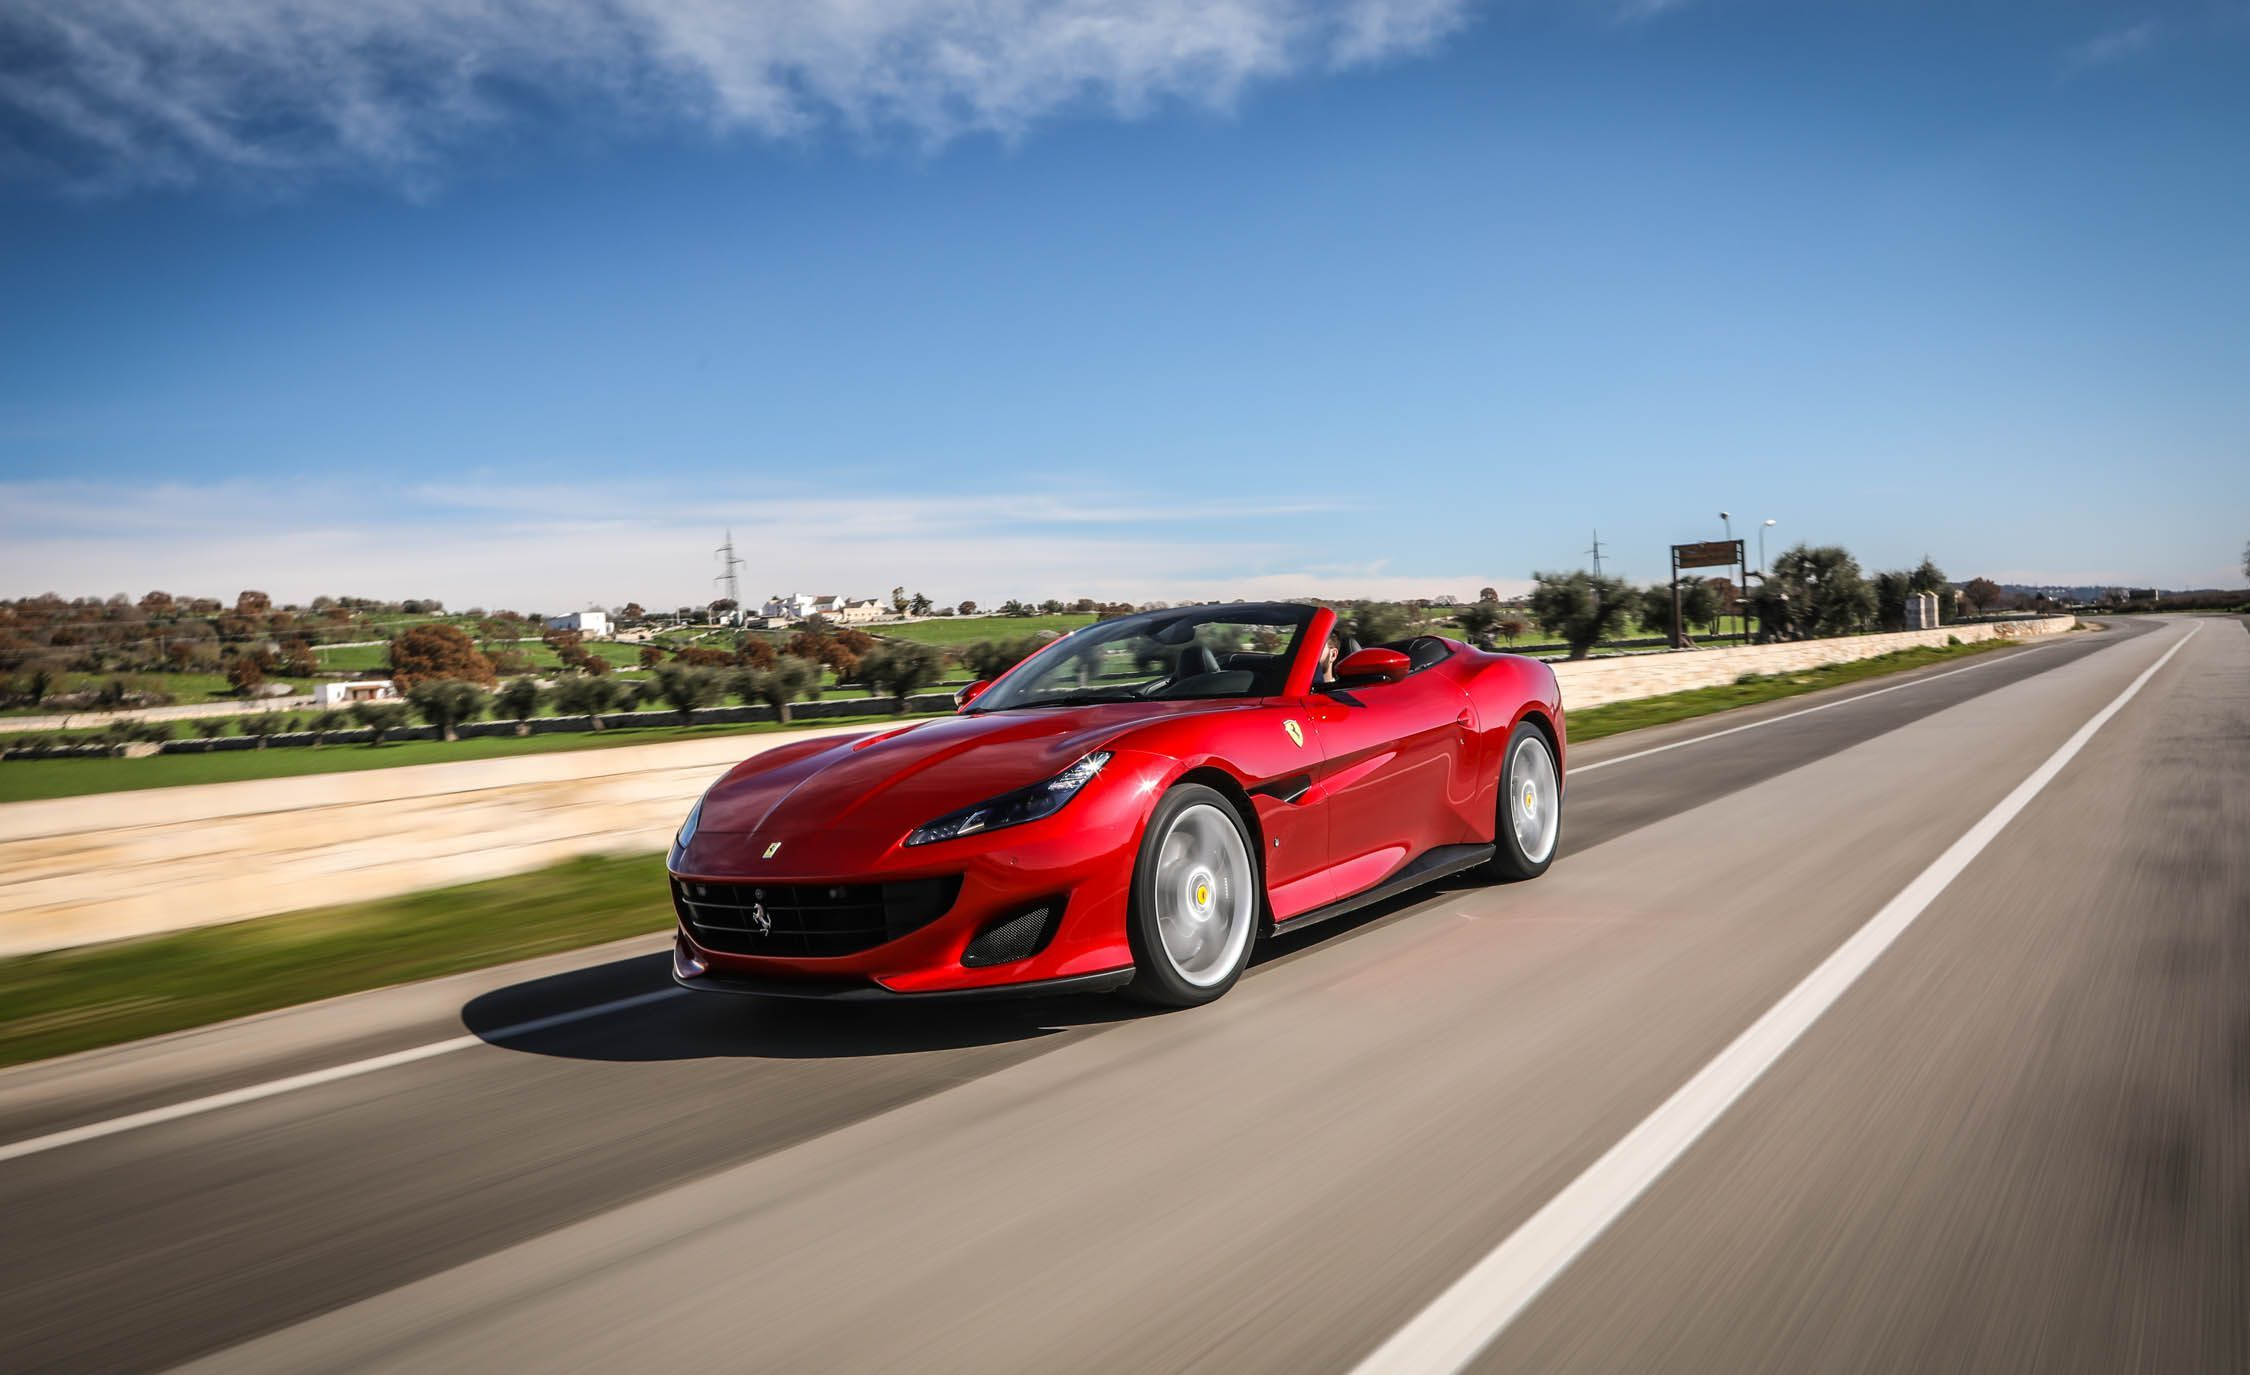 2019 Ferrari Portofino Review, Pricing, and Specs